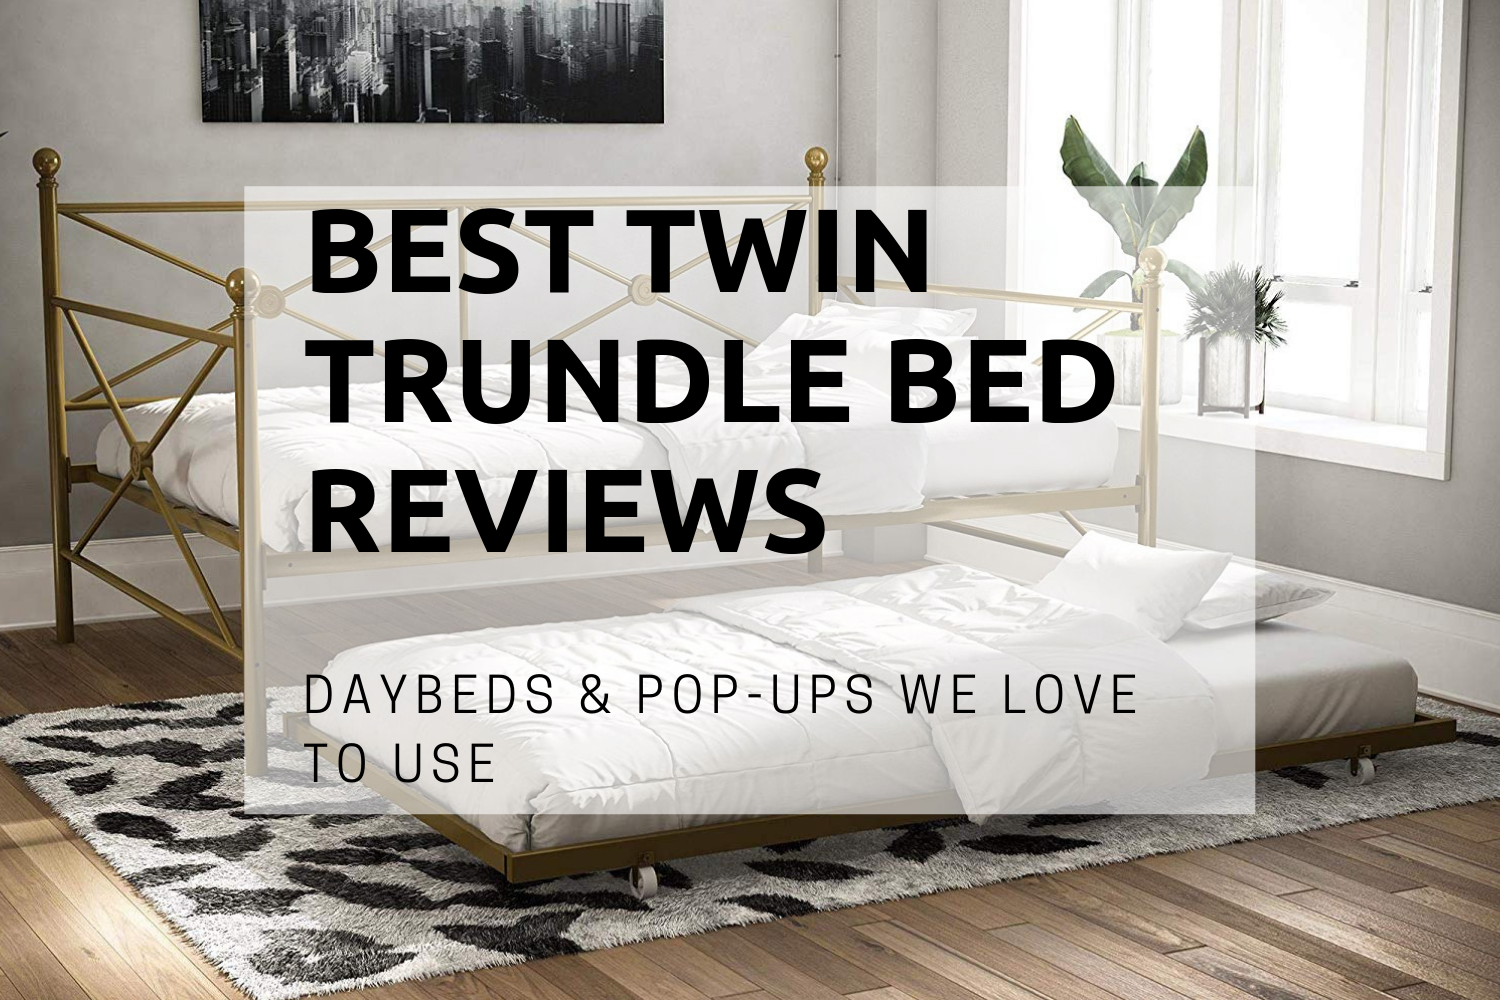 BEST TWIN TRUNDLE BED